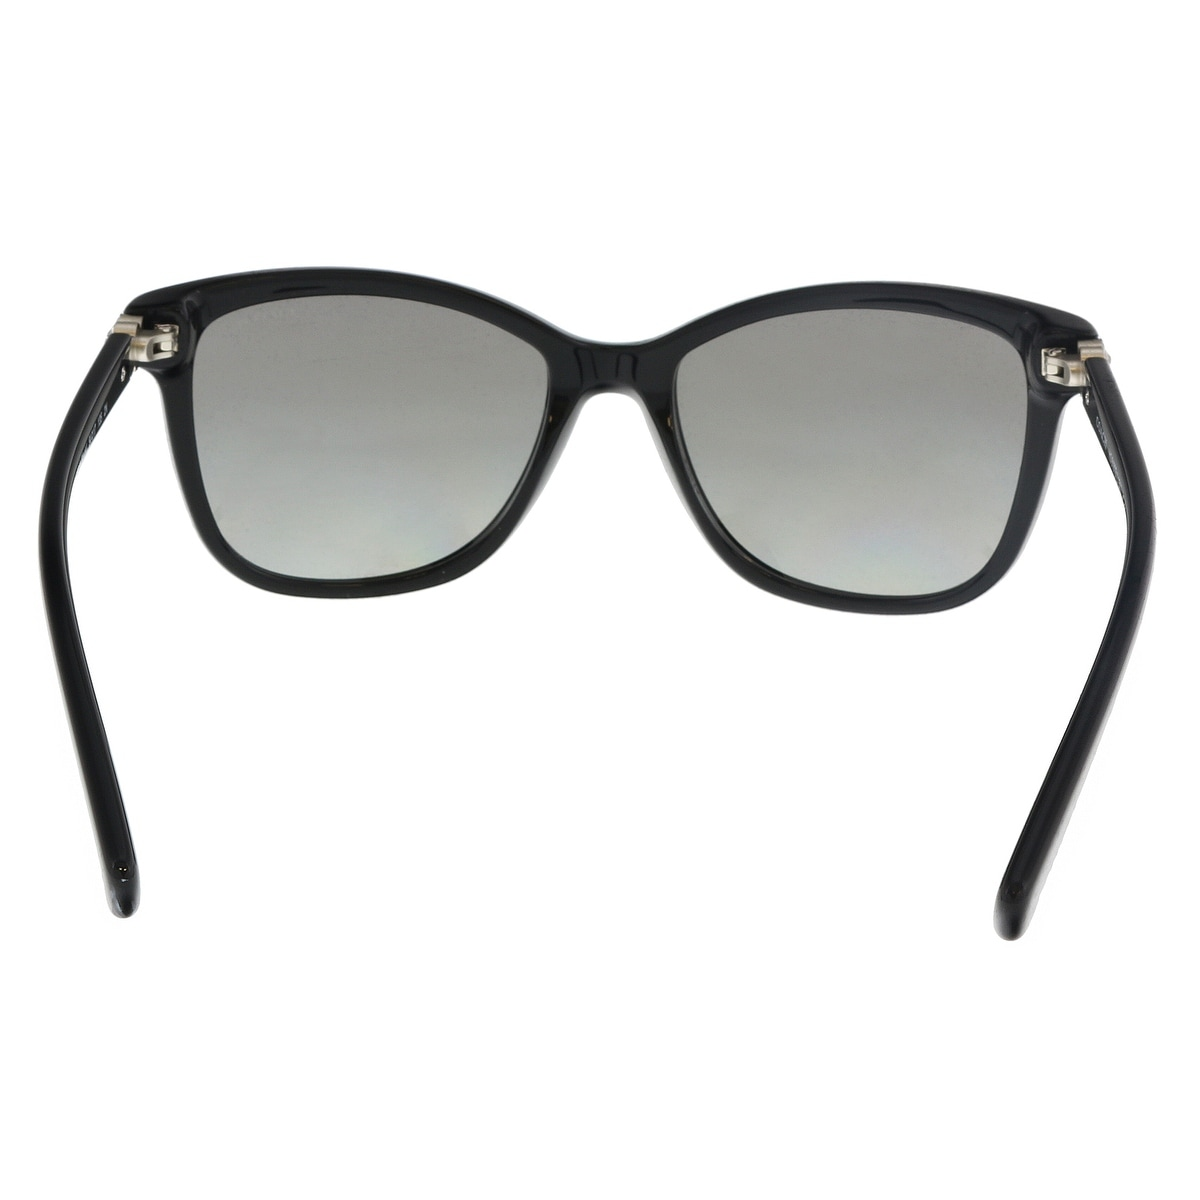 88332cdcaa9a9 Shop Coach HC8187B 500211 Black Butterfly Sunglasses - 54-17-135 - Free  Shipping Today - Overstock - 21388862